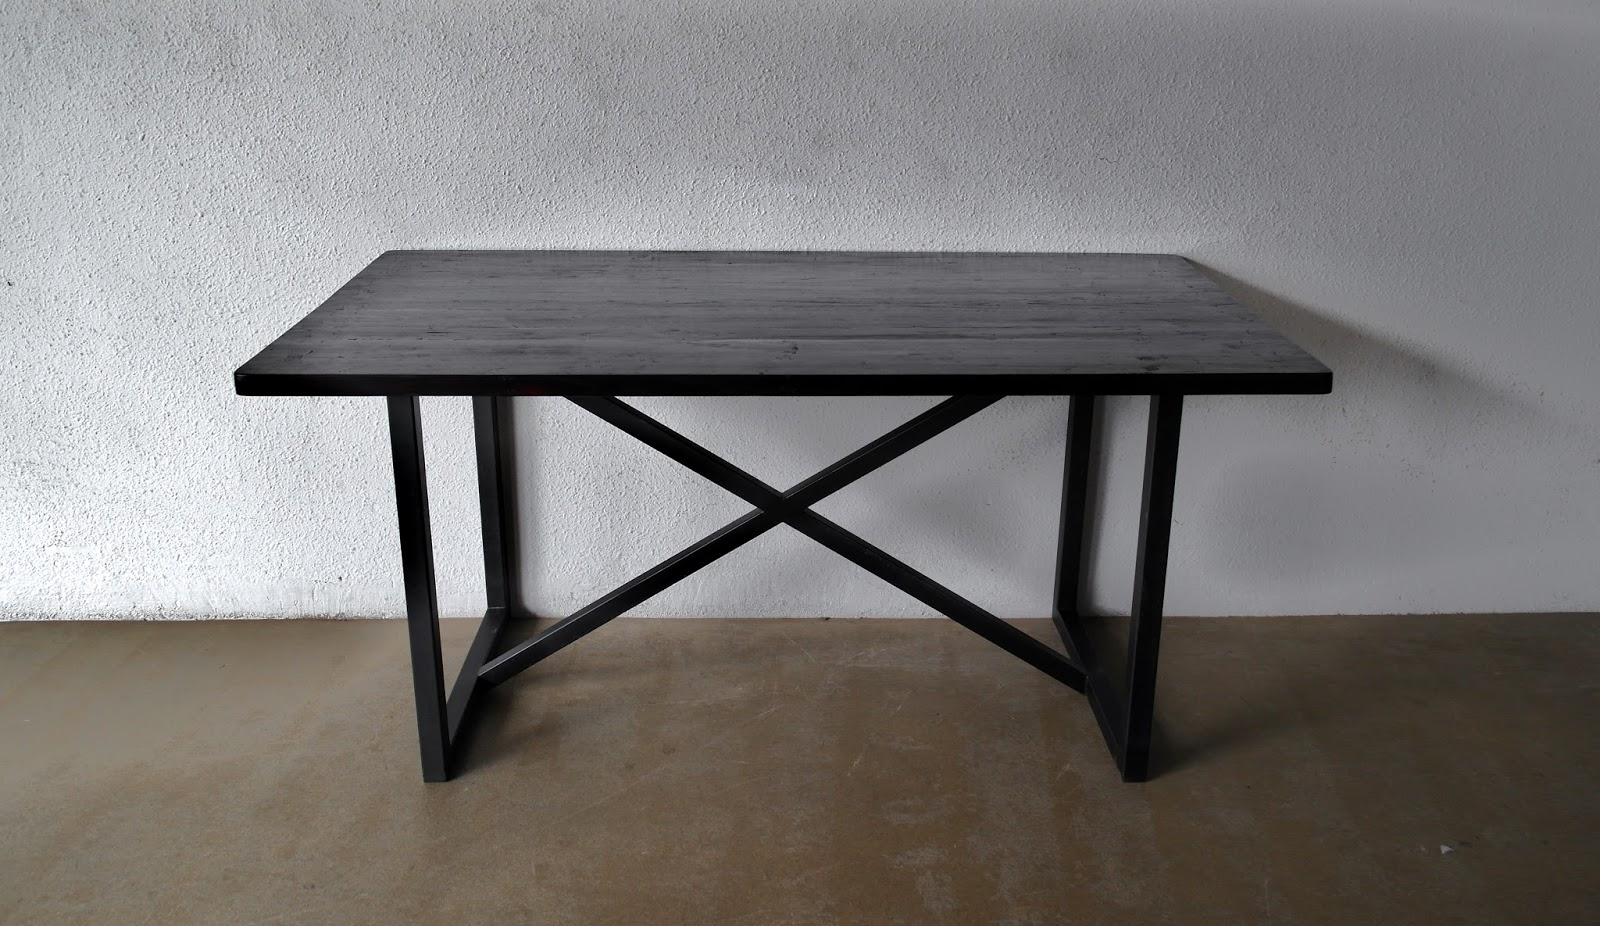 COMBINING METAL AND WOOD FOR